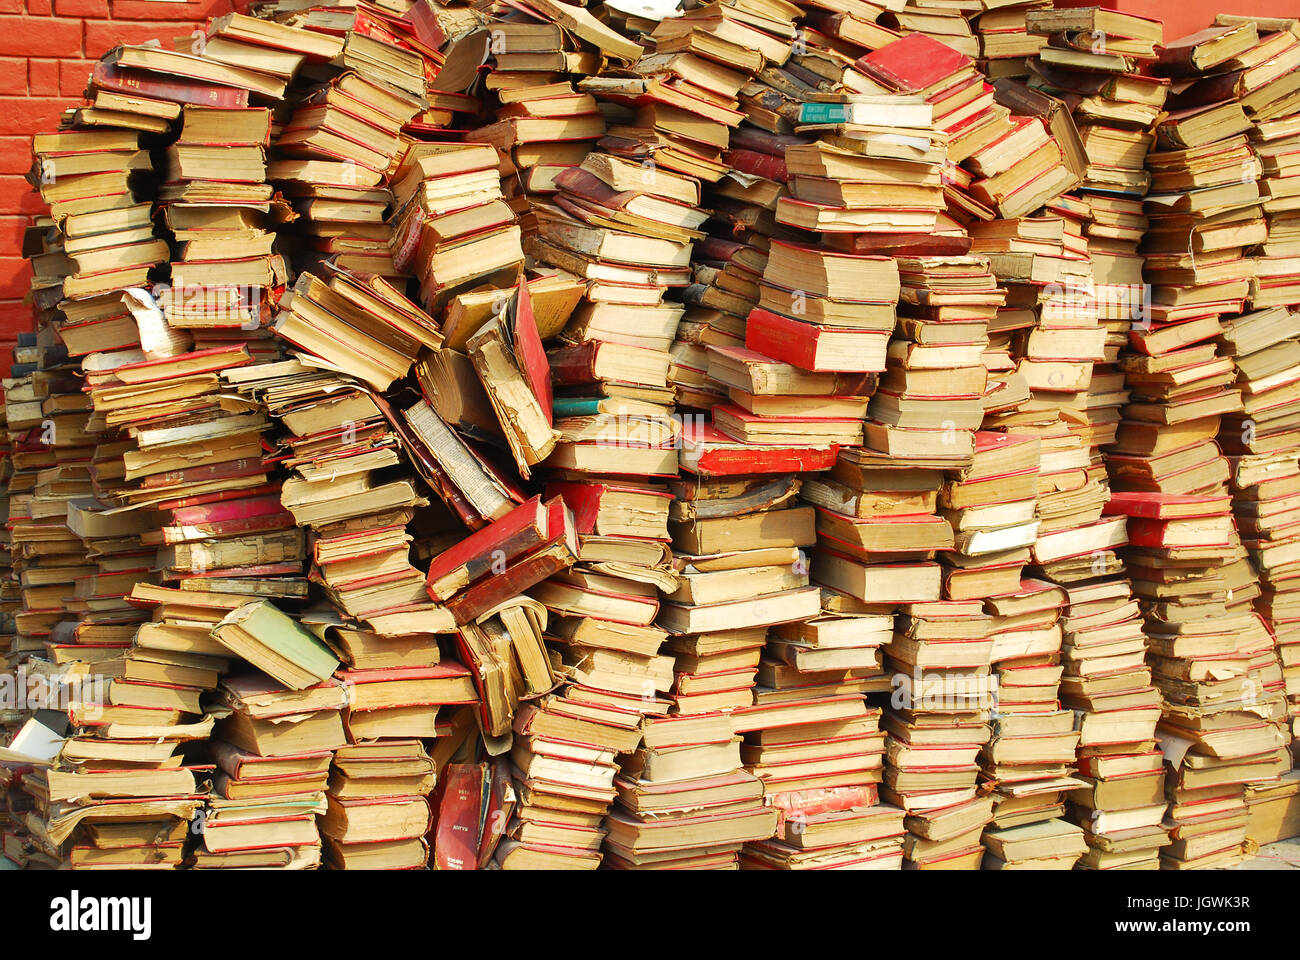 A messy collection of used books - Stock Image